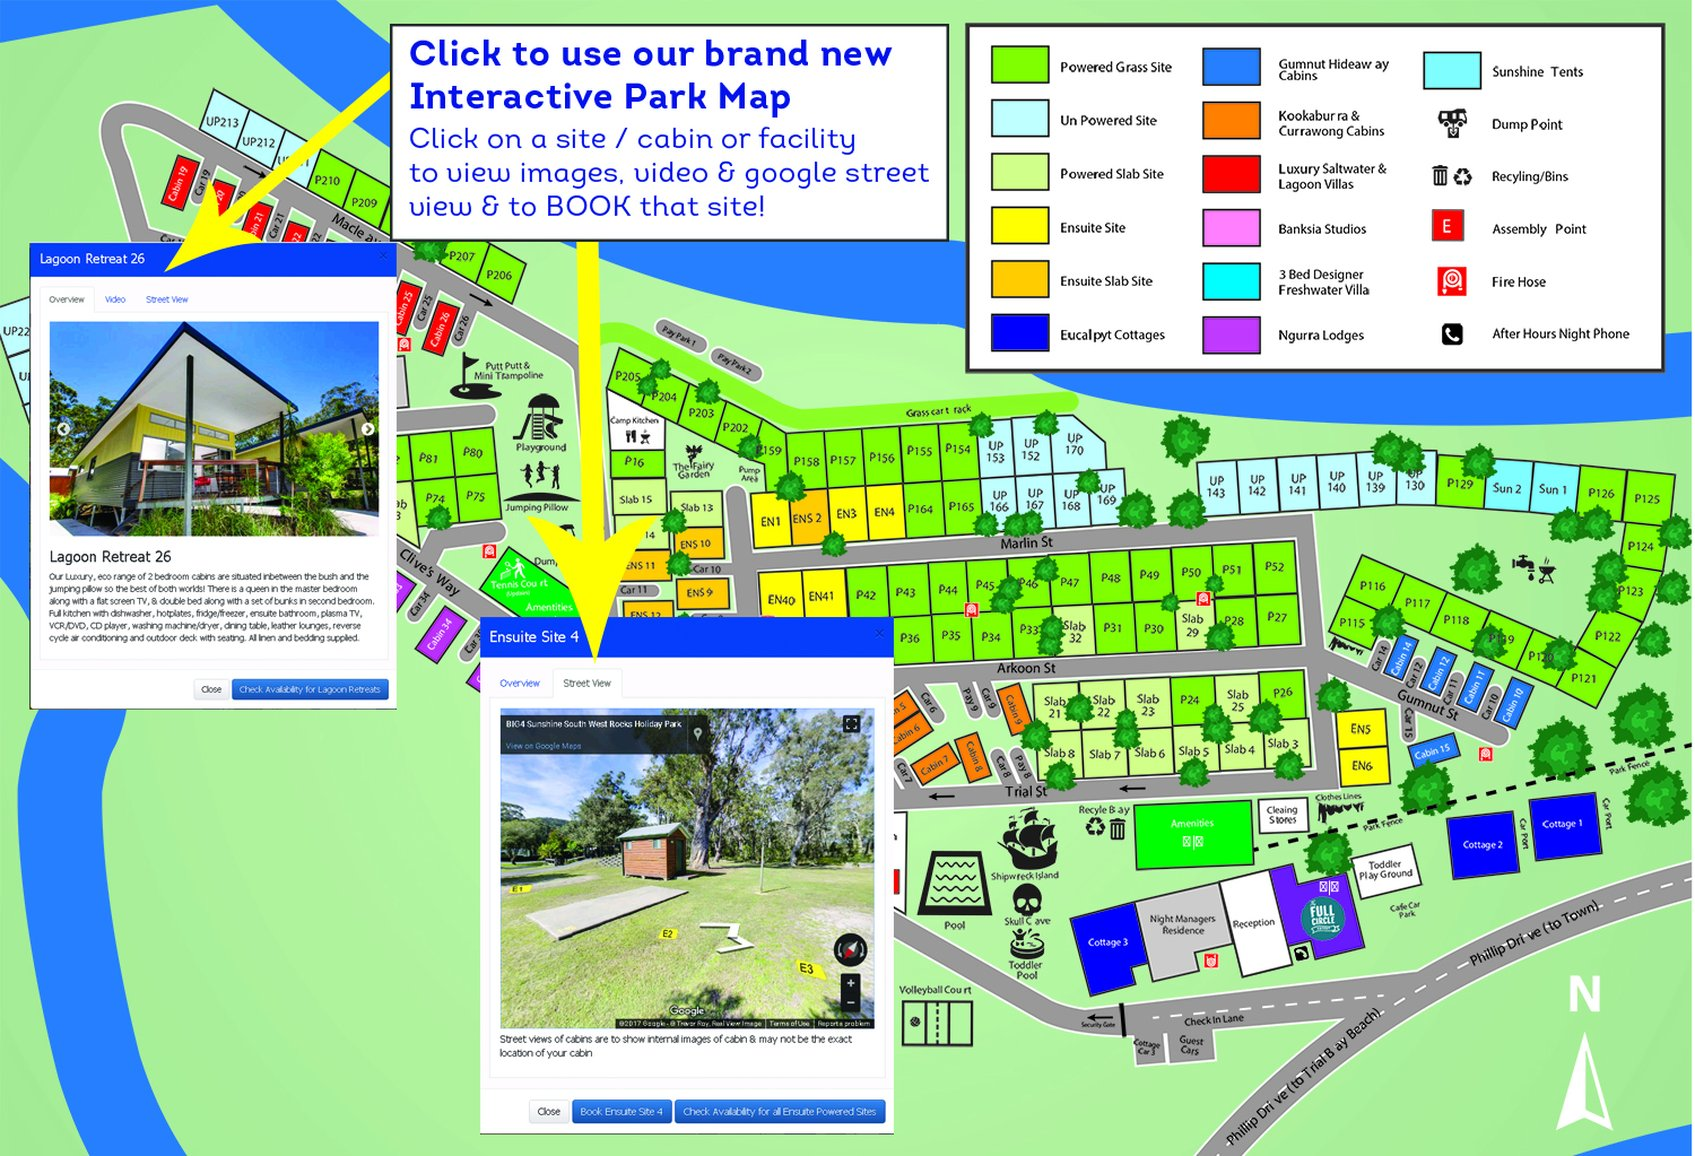 Home Big4 Sunshine Resort South West Rocks I Book Direct For The Big  Voucher Map Your Site Is A Good Fit To Have Virtual Walk Around And Exact Ensure You Great Stay Pdf Of Here